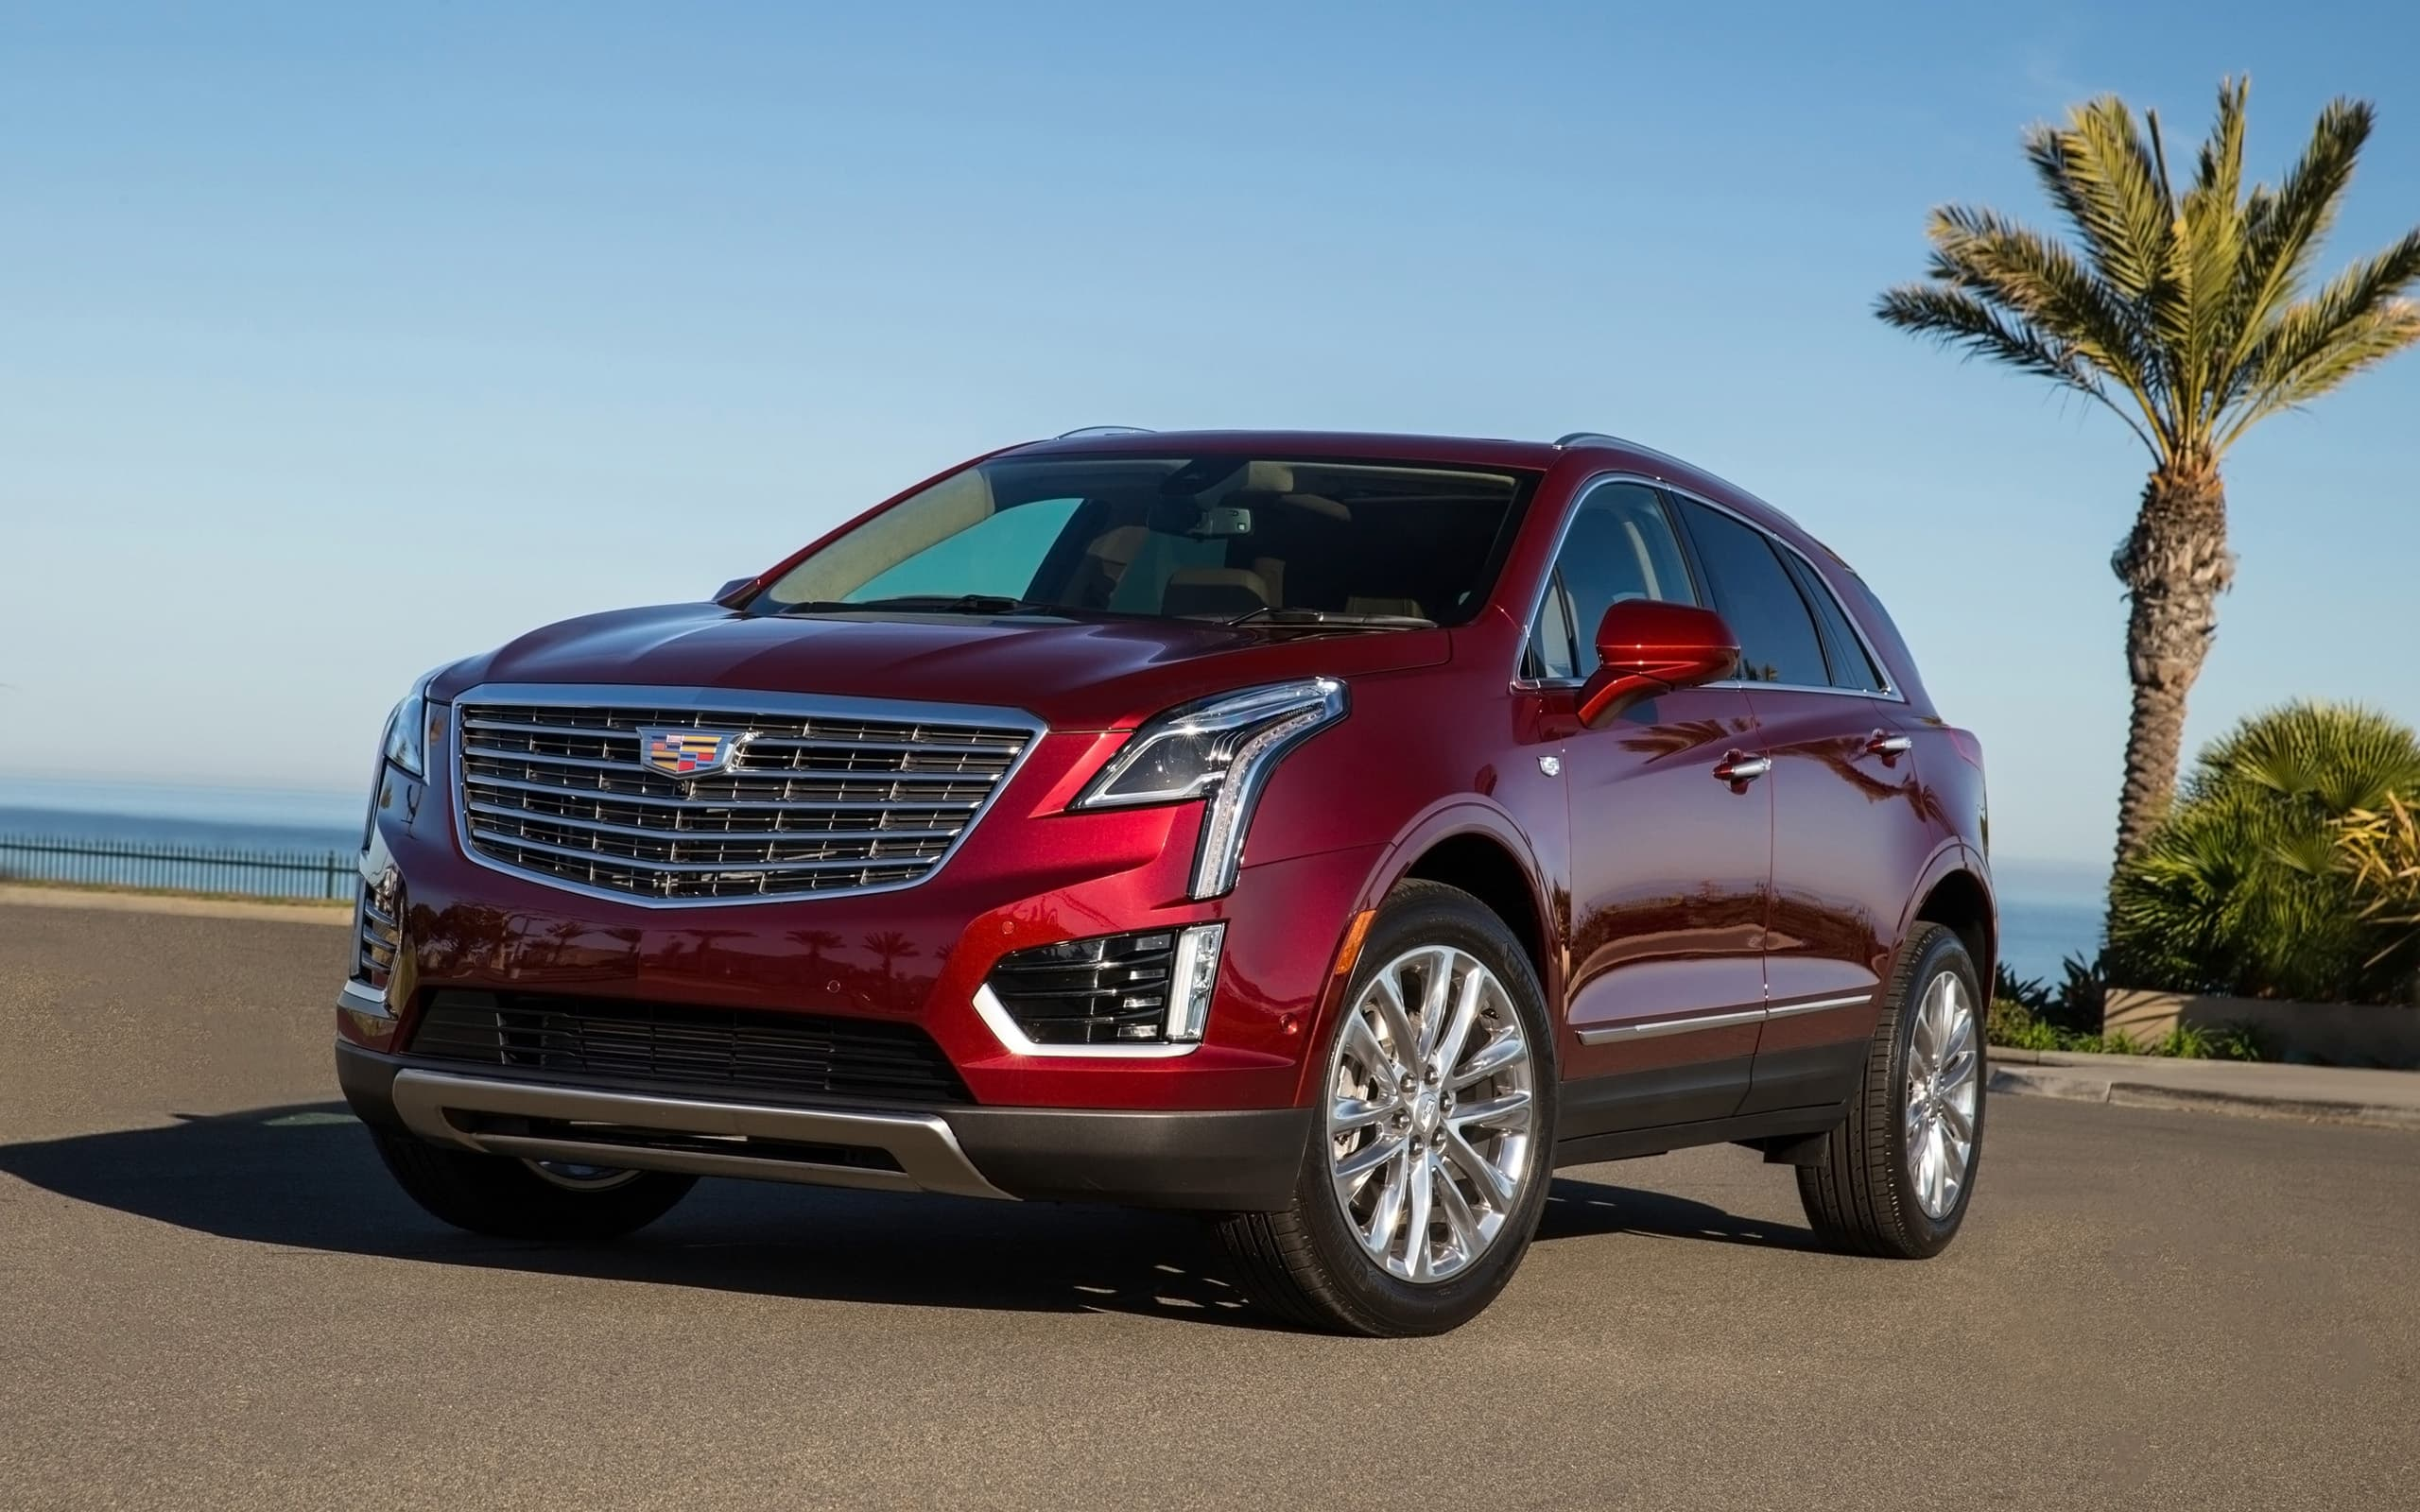 Black And White Wallpaper Hd 2017 Cadillac Xt5 Wallpapers Hd Suv Black Red White Silver